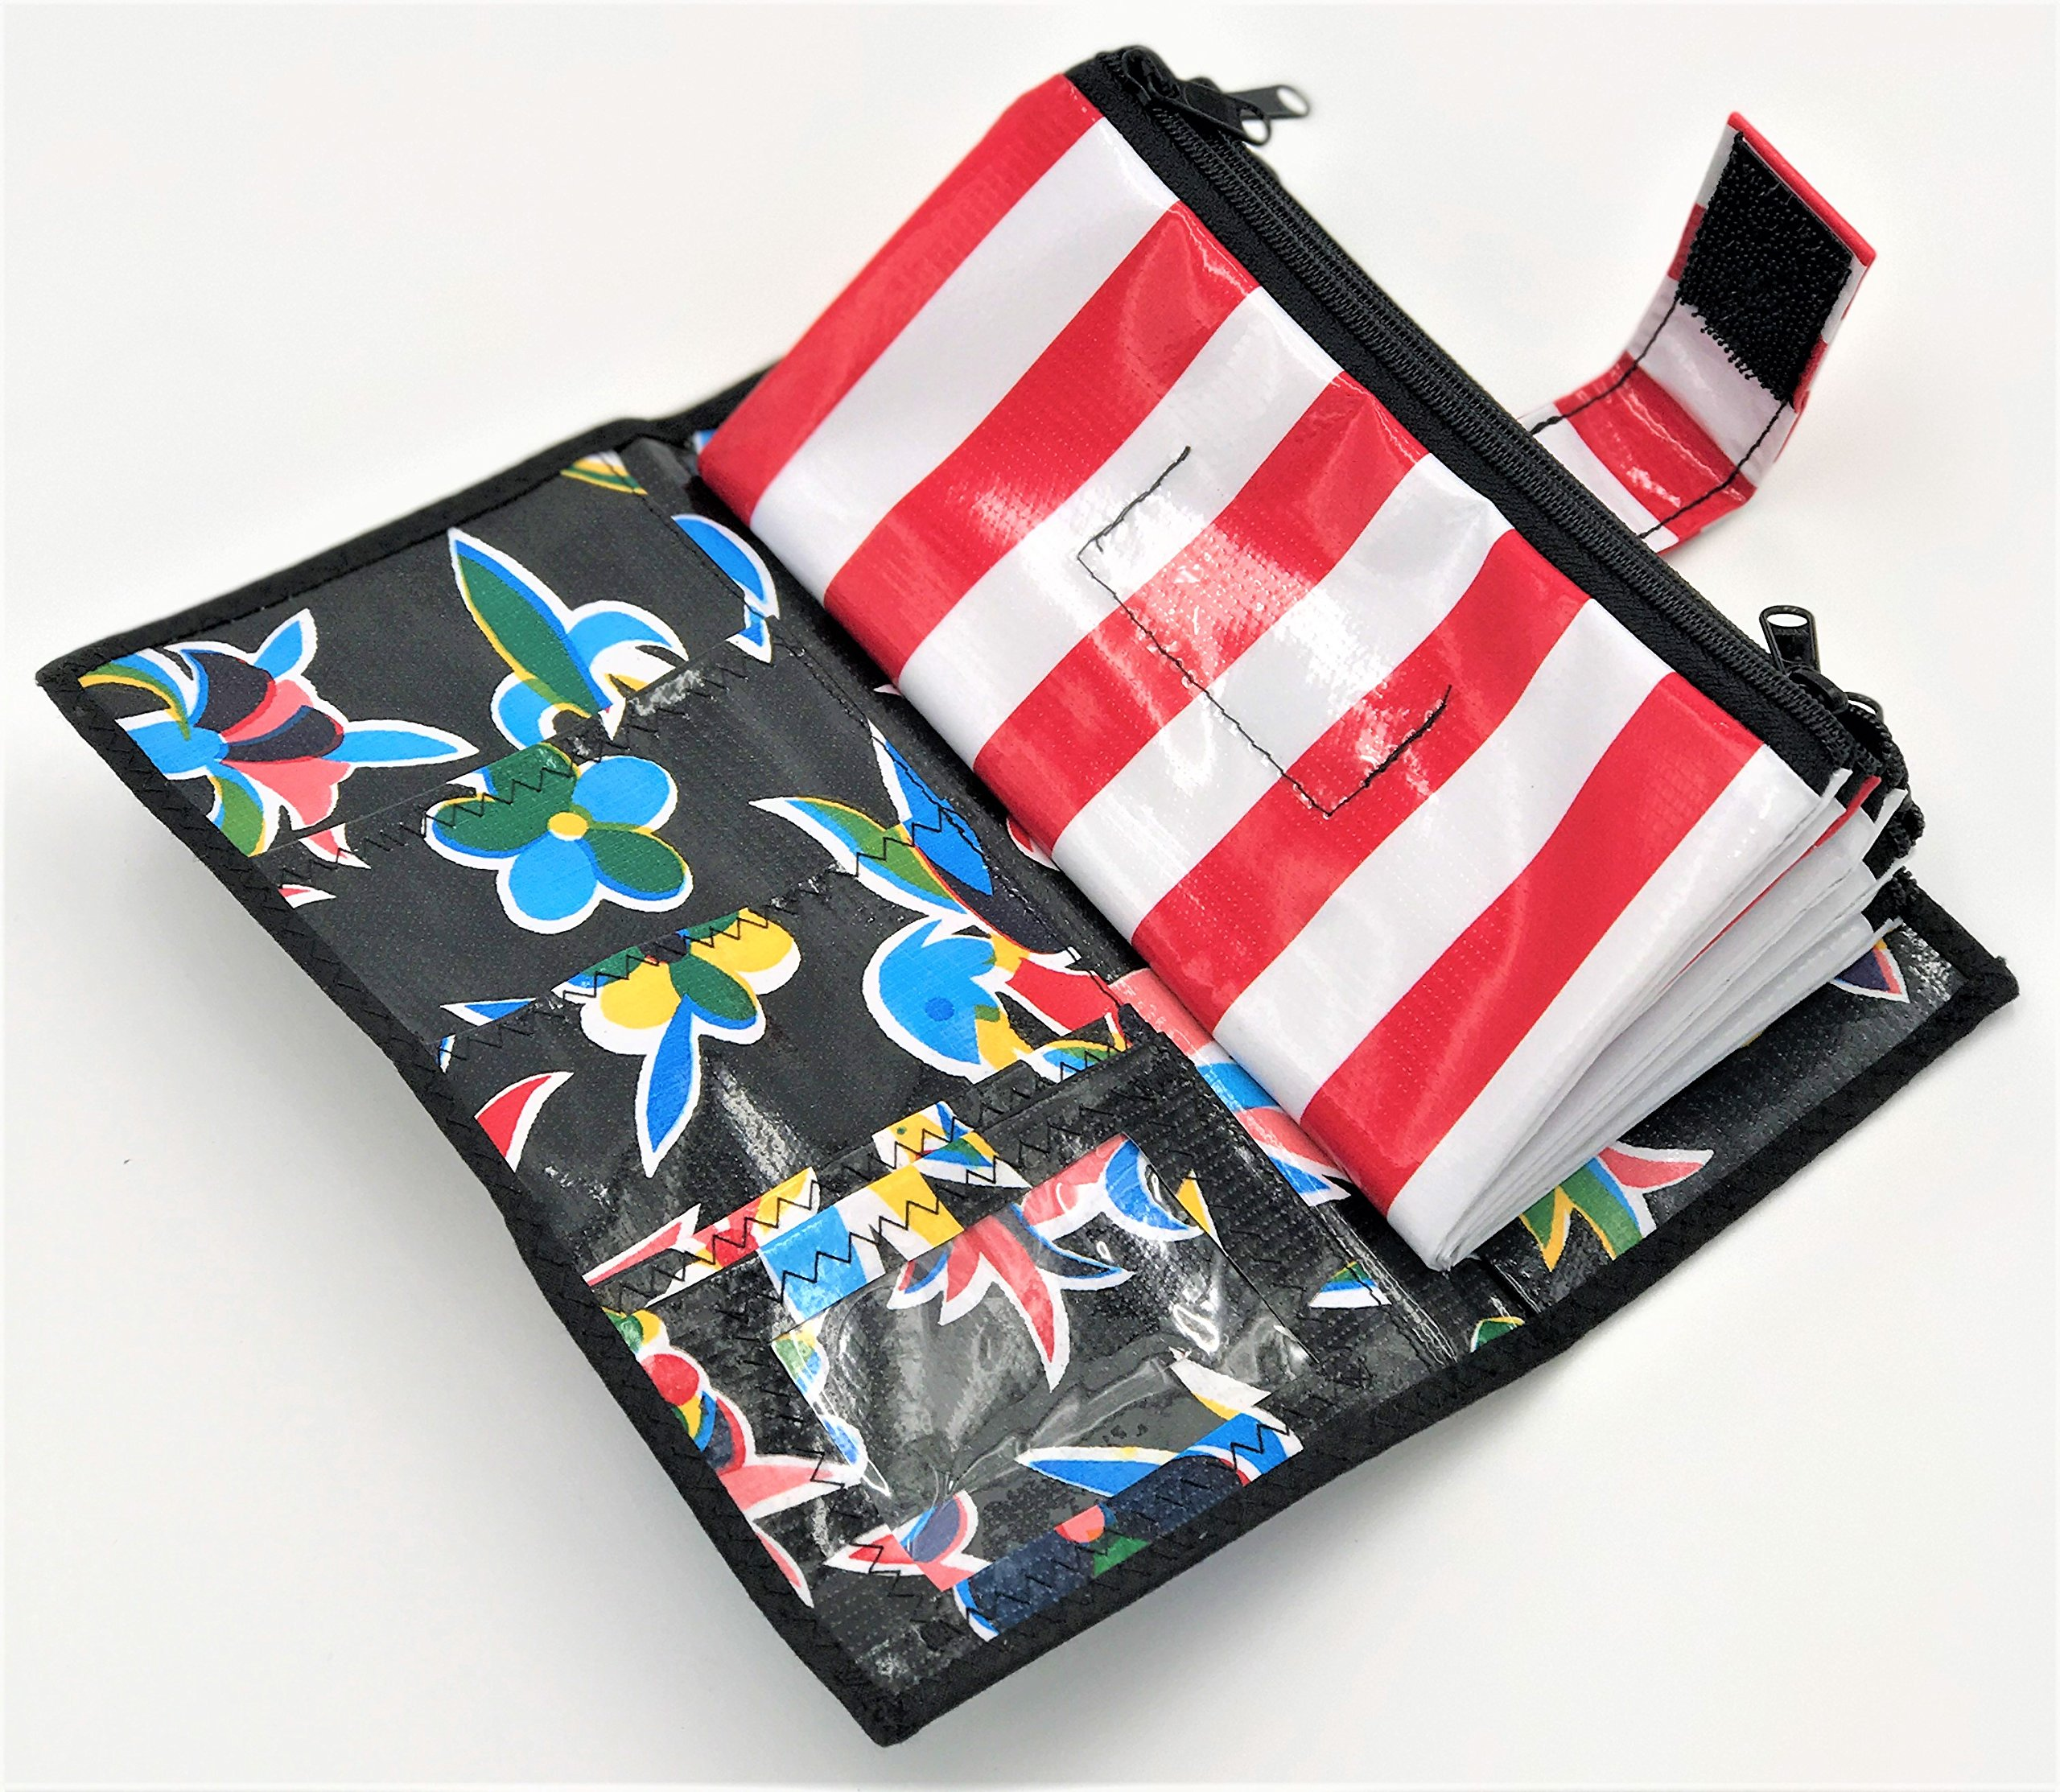 Cute Black and Red Stripe Oilcloth Envelope System Wallet for Cash Budgeting and Extreme Couponing